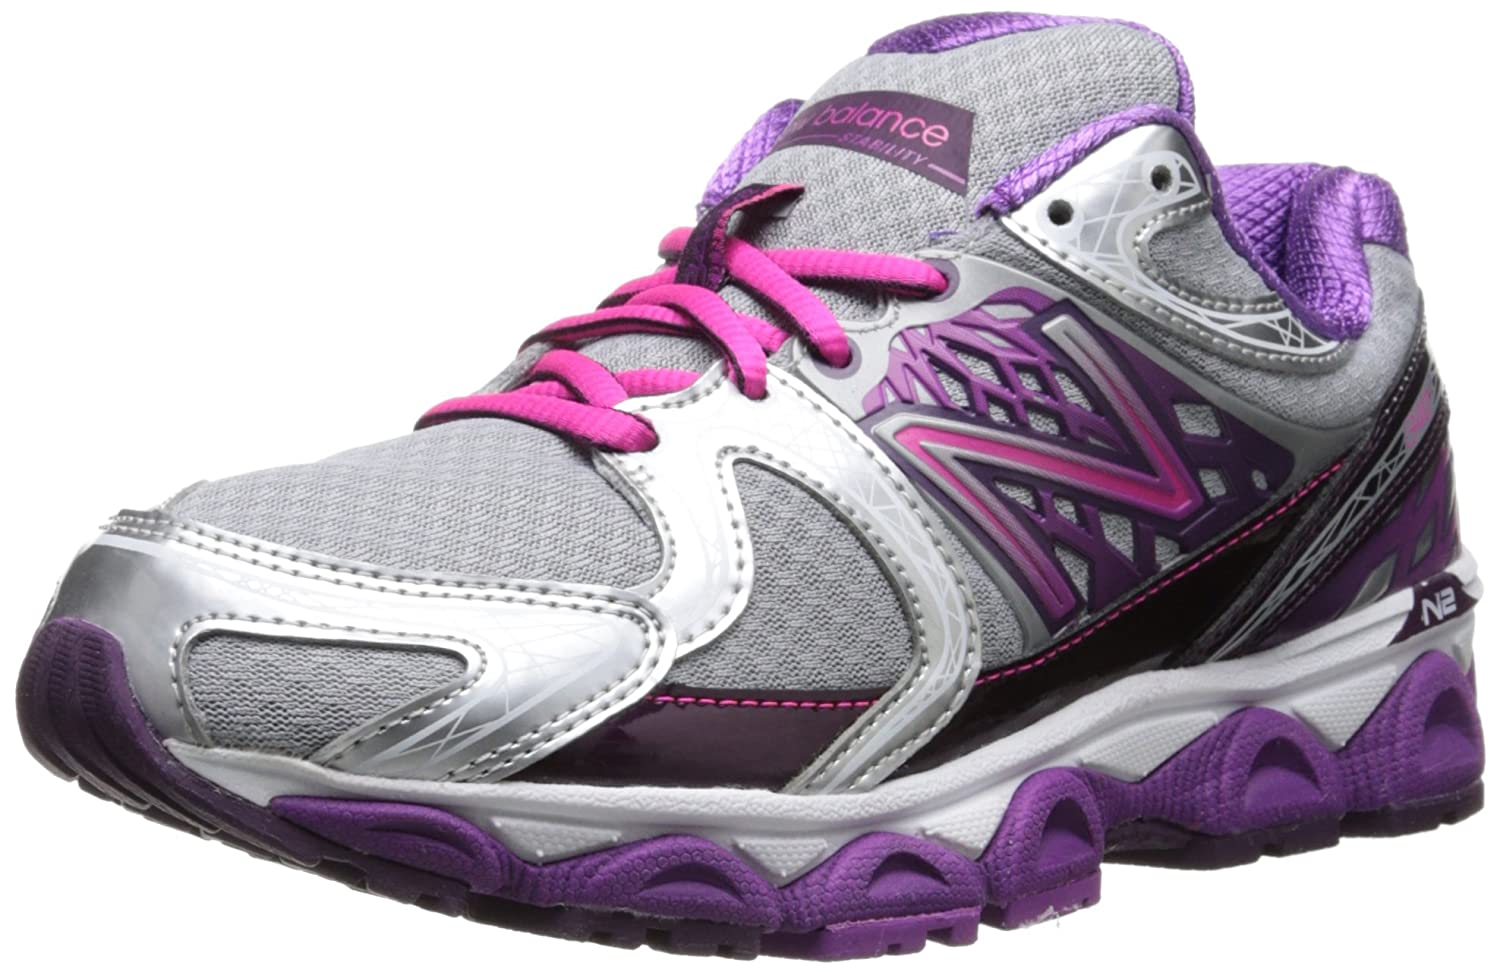 New Balance Women's W1340v2 Optimum Control Running Shoe B00GYOW482 10.5 B(M) US|Purple/Silver